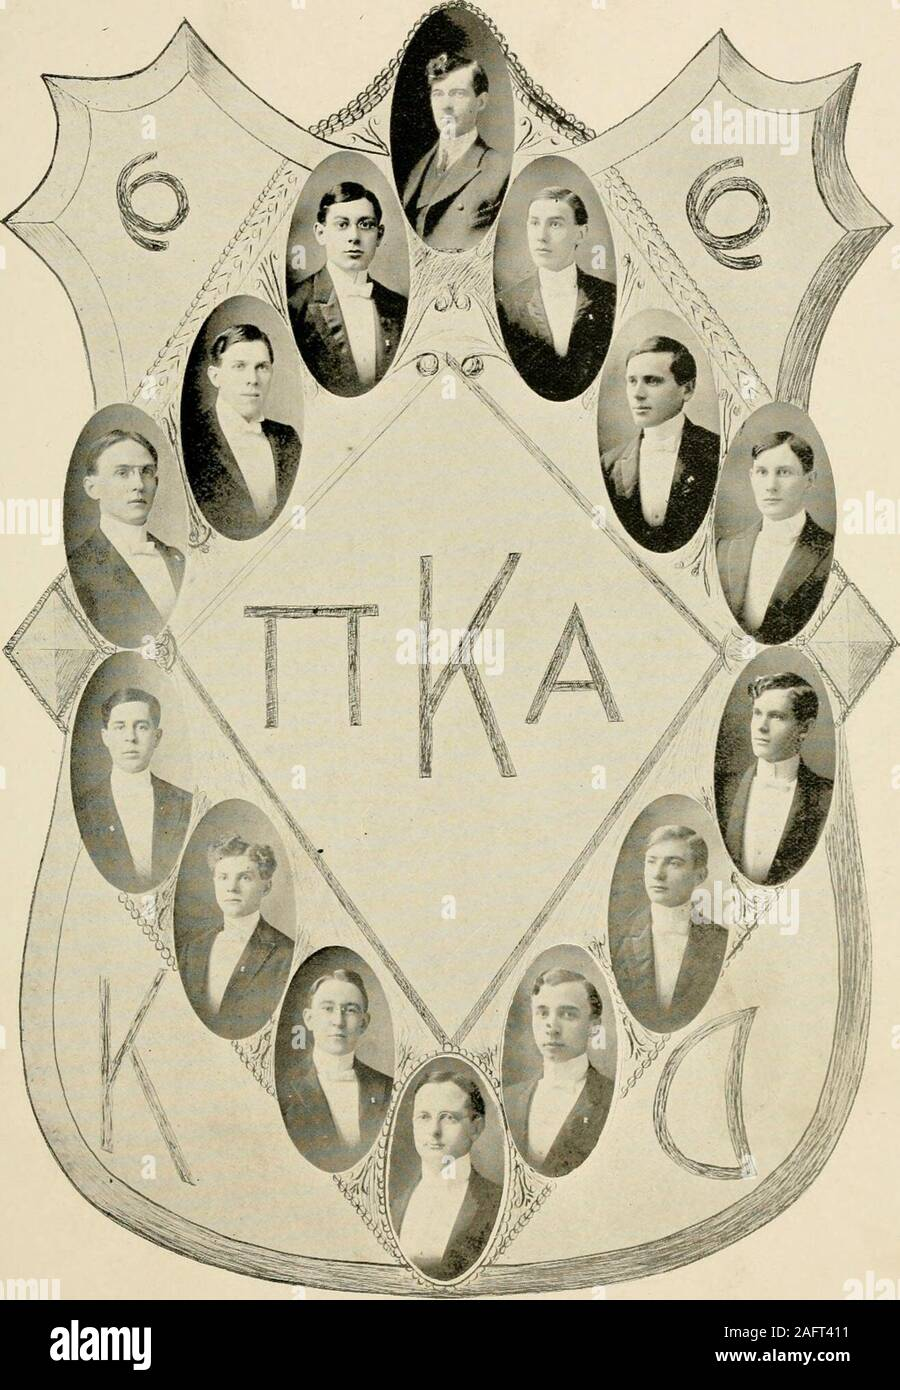 . The Monticola. ;pi Iftappa .ALpfya FRATERNITY FOUNDED AT UNIVERSITY OF VIRGINIA, 1SGS. dolors Garnet and Gold. 145 .Atpfya O^eta Chapter ESTABLISHED 1904. Fr-atre in Facilitate. Walter Fleming. Fratres in Universitate. Carl Webster Neff. Francais Alan Parsons.Ralph Franklin StaublyAlbert Lafayette Lohm. 1905 Cleveland McSherry Seibert. igo6 Michael Joseph Malamphy, Jr.Arthur Arnold.Alexander Hardie Foreman.William Thomas Owens Robert McVeigh Drane. 1907 Curtis Miller Hanna. 1908 Roger Earle Watson. Special. William Oswald Perry. 146. 147 yioll of Active Chapters University of Virginia. Willi Stock Photo